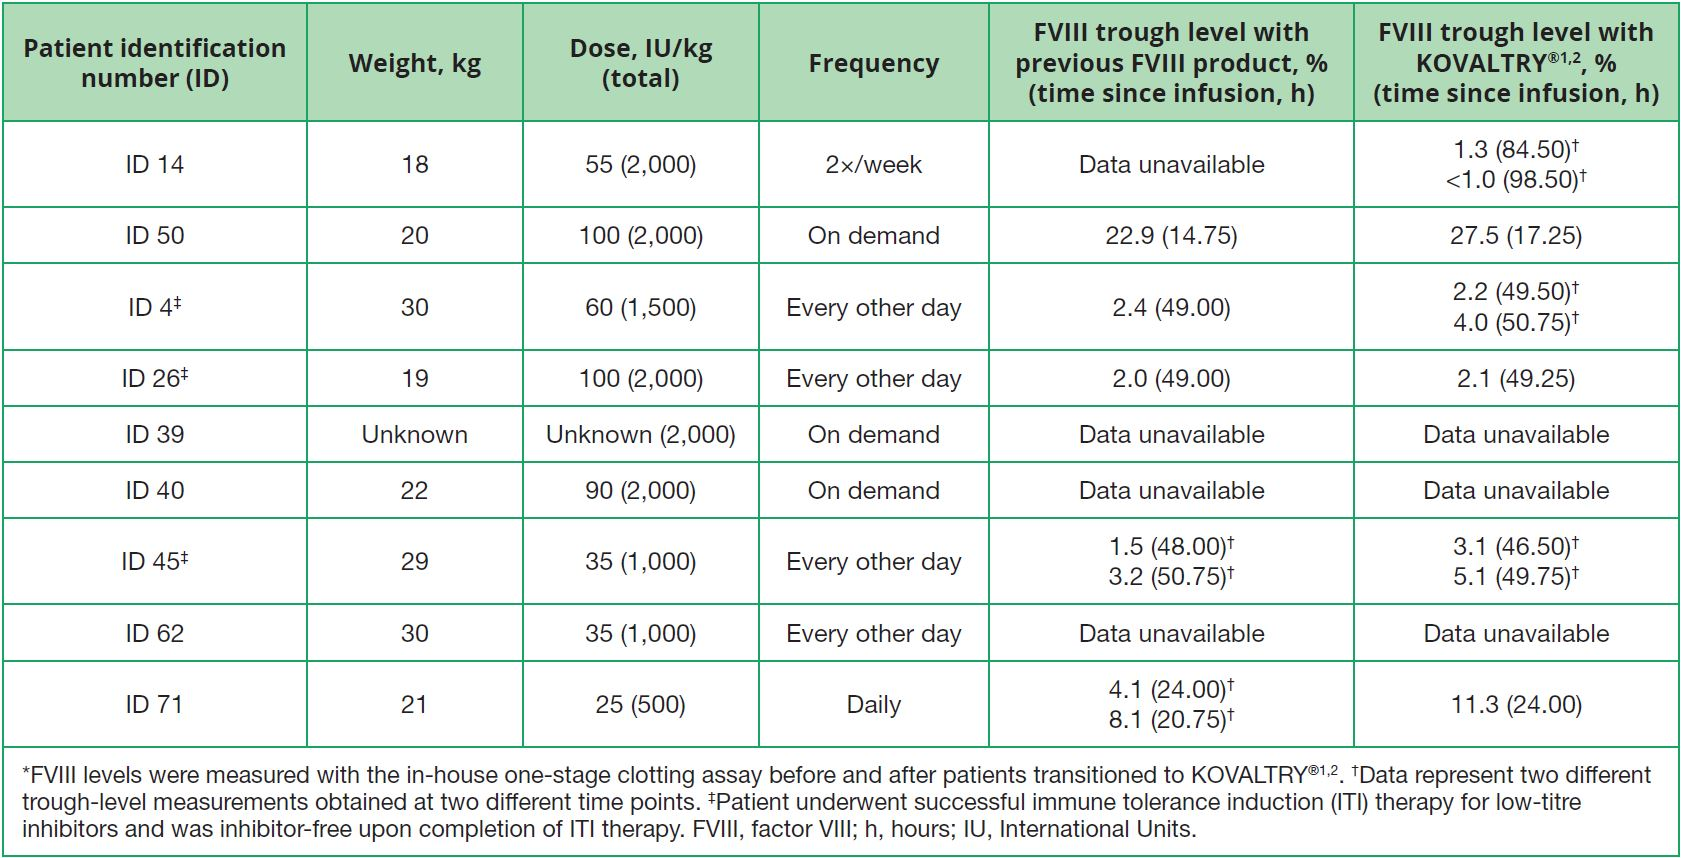 Table 7. Dosing regimens and FVIII trough levels for children receiving KOVALTRY®1,2 at the HTC in Bonn, Germany*